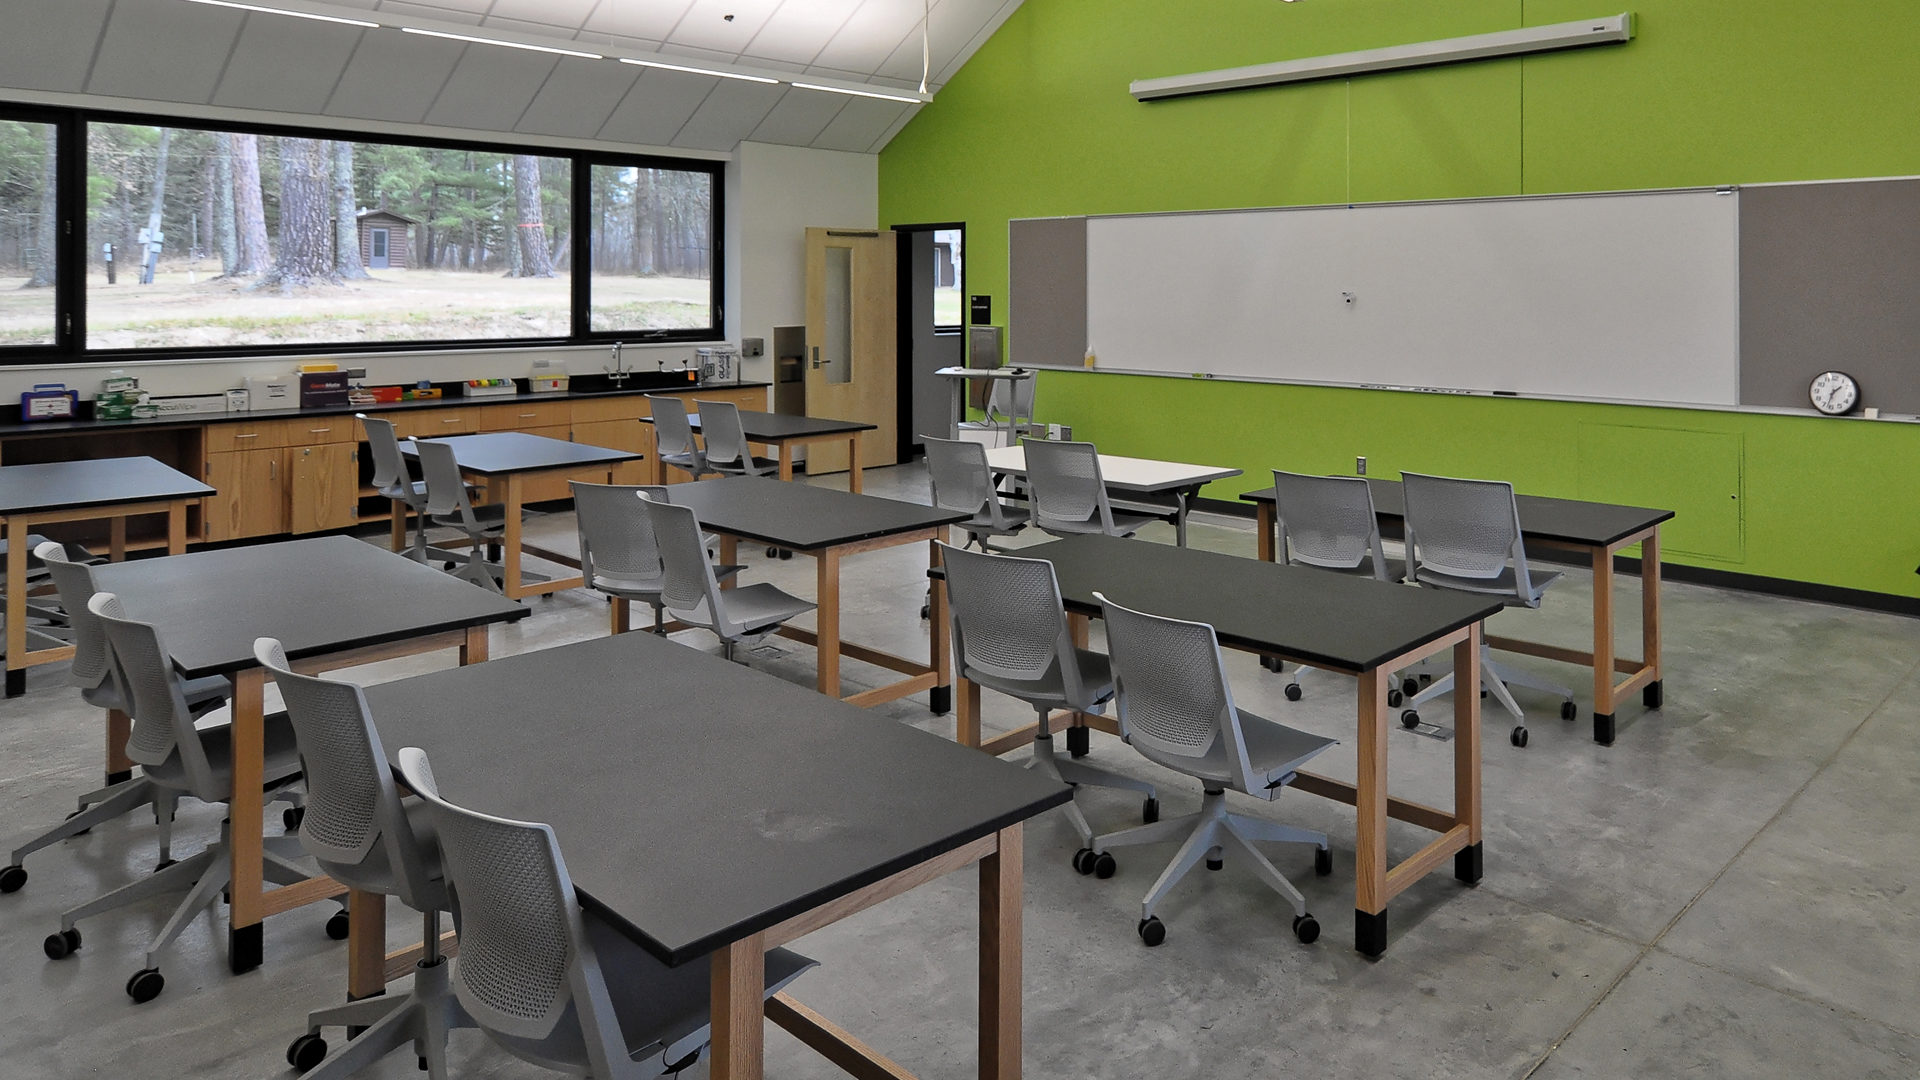 U of M Itasca Biological Station and Laboratories Classroom